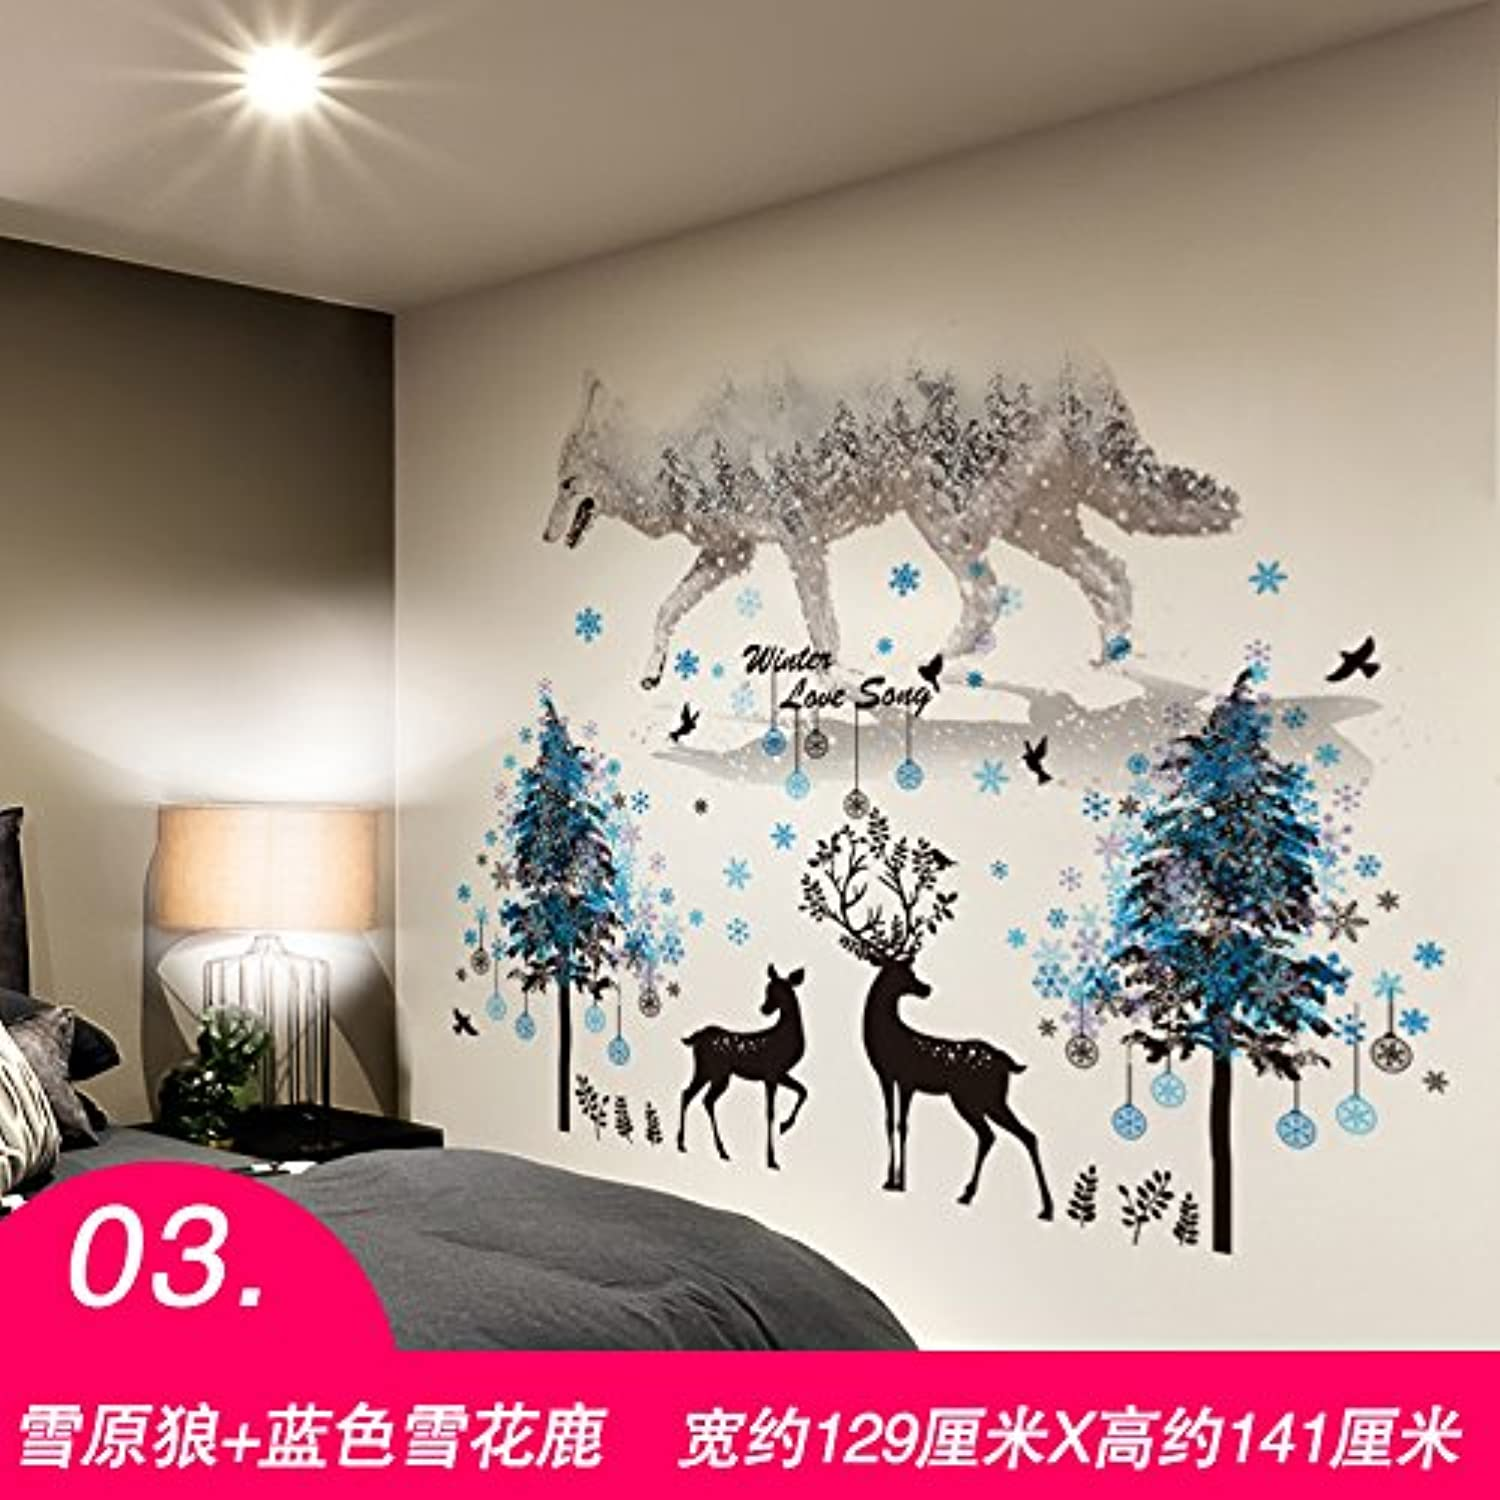 Znzbzt Creative 3D Wall Decals Bedroom Wall Decor self Adhesive Canvas Wall Painting, Deer and Wolf.